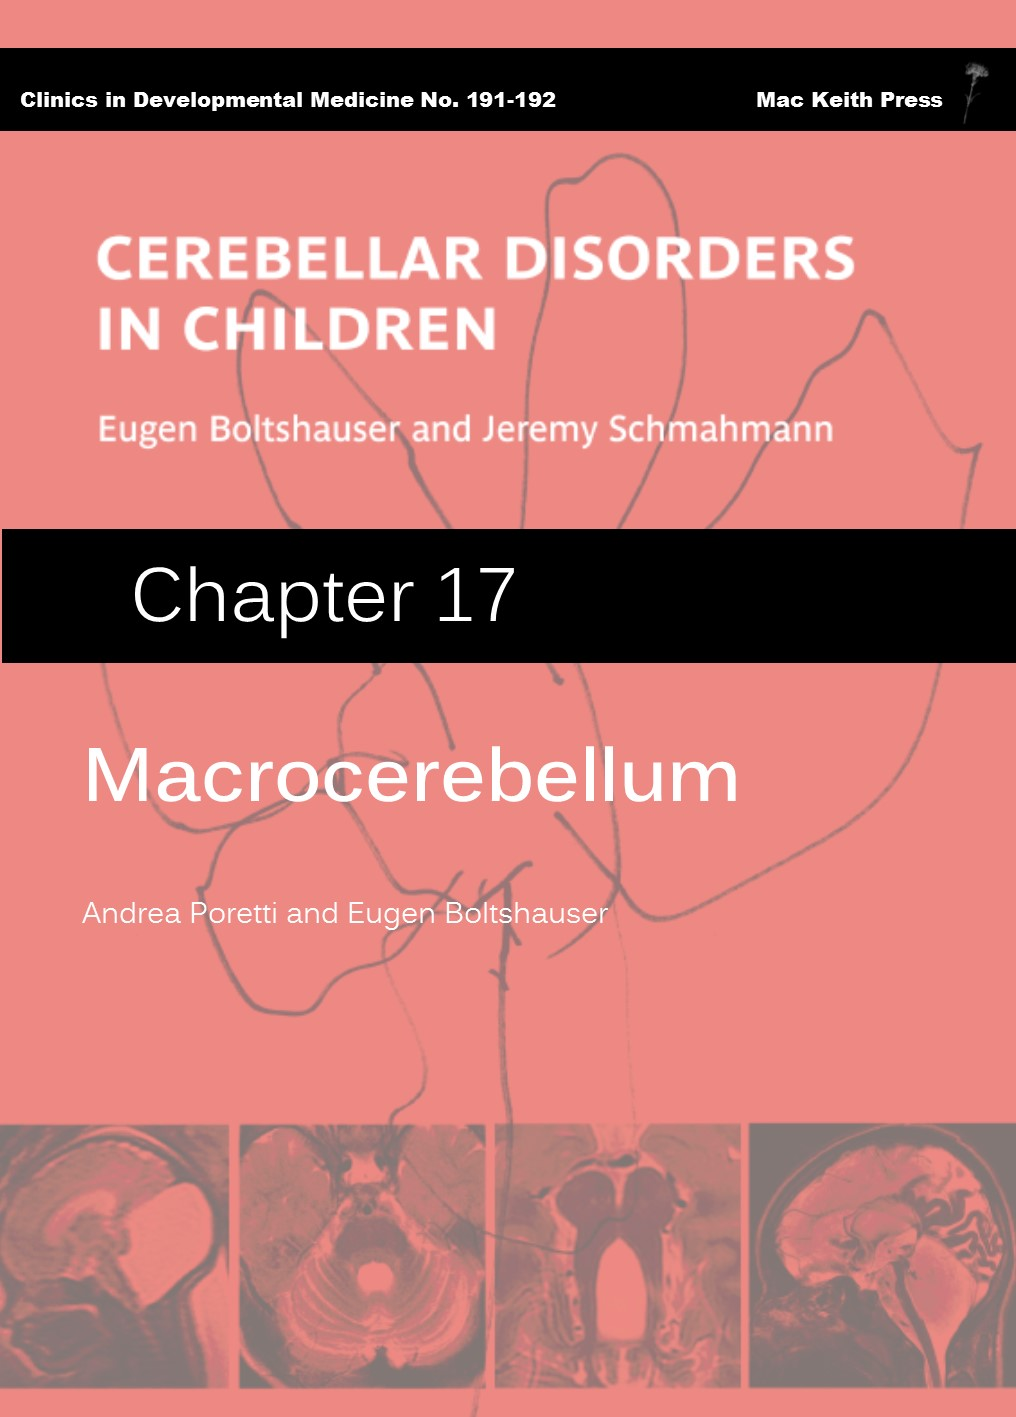 Macrocerebellum - Cerebellar Disorders in Children (Chapter 17) COVER